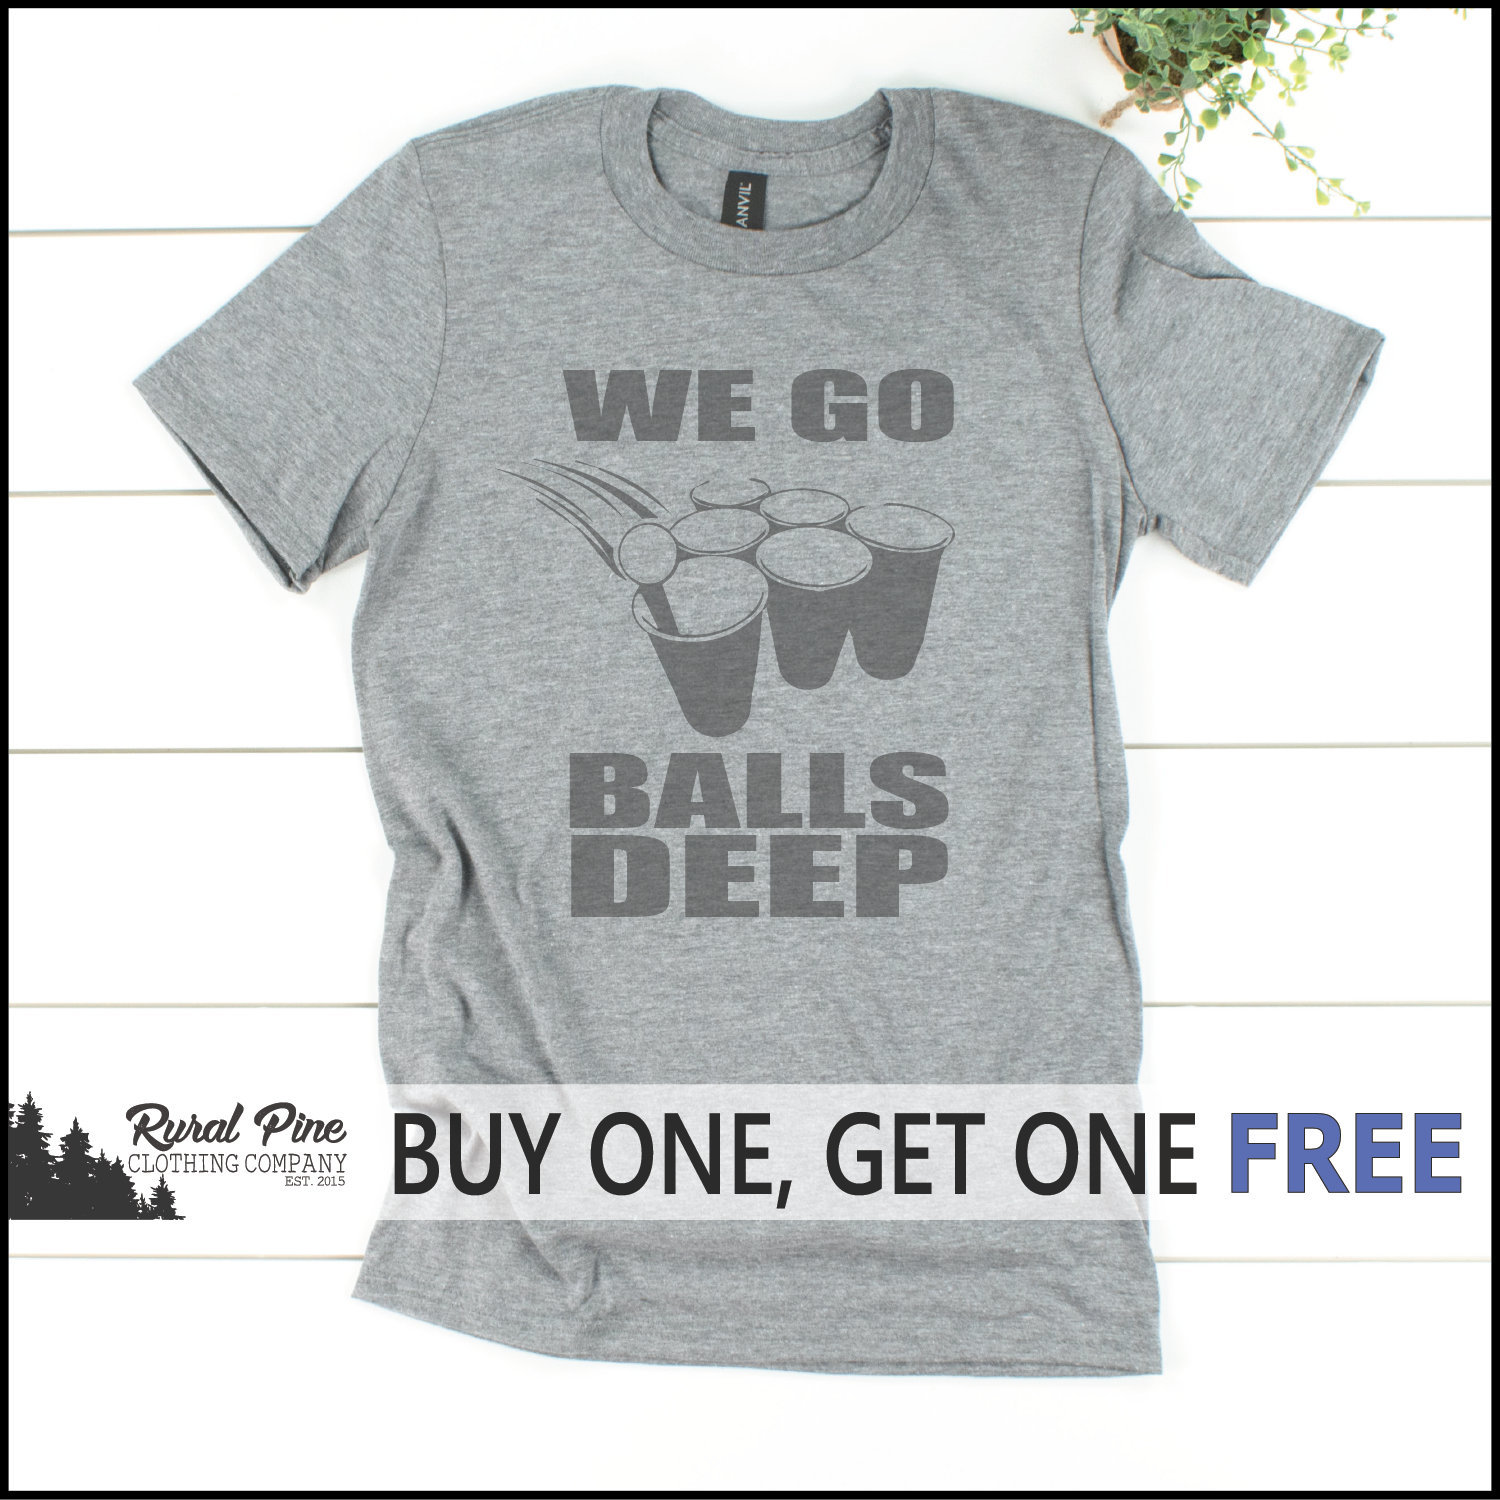 f760813e1b667 SALE TODAY: We Go Balls Deep T-Shirt // Unisex Tee // Beer Pong Shirt //  Ping Pong Shirt